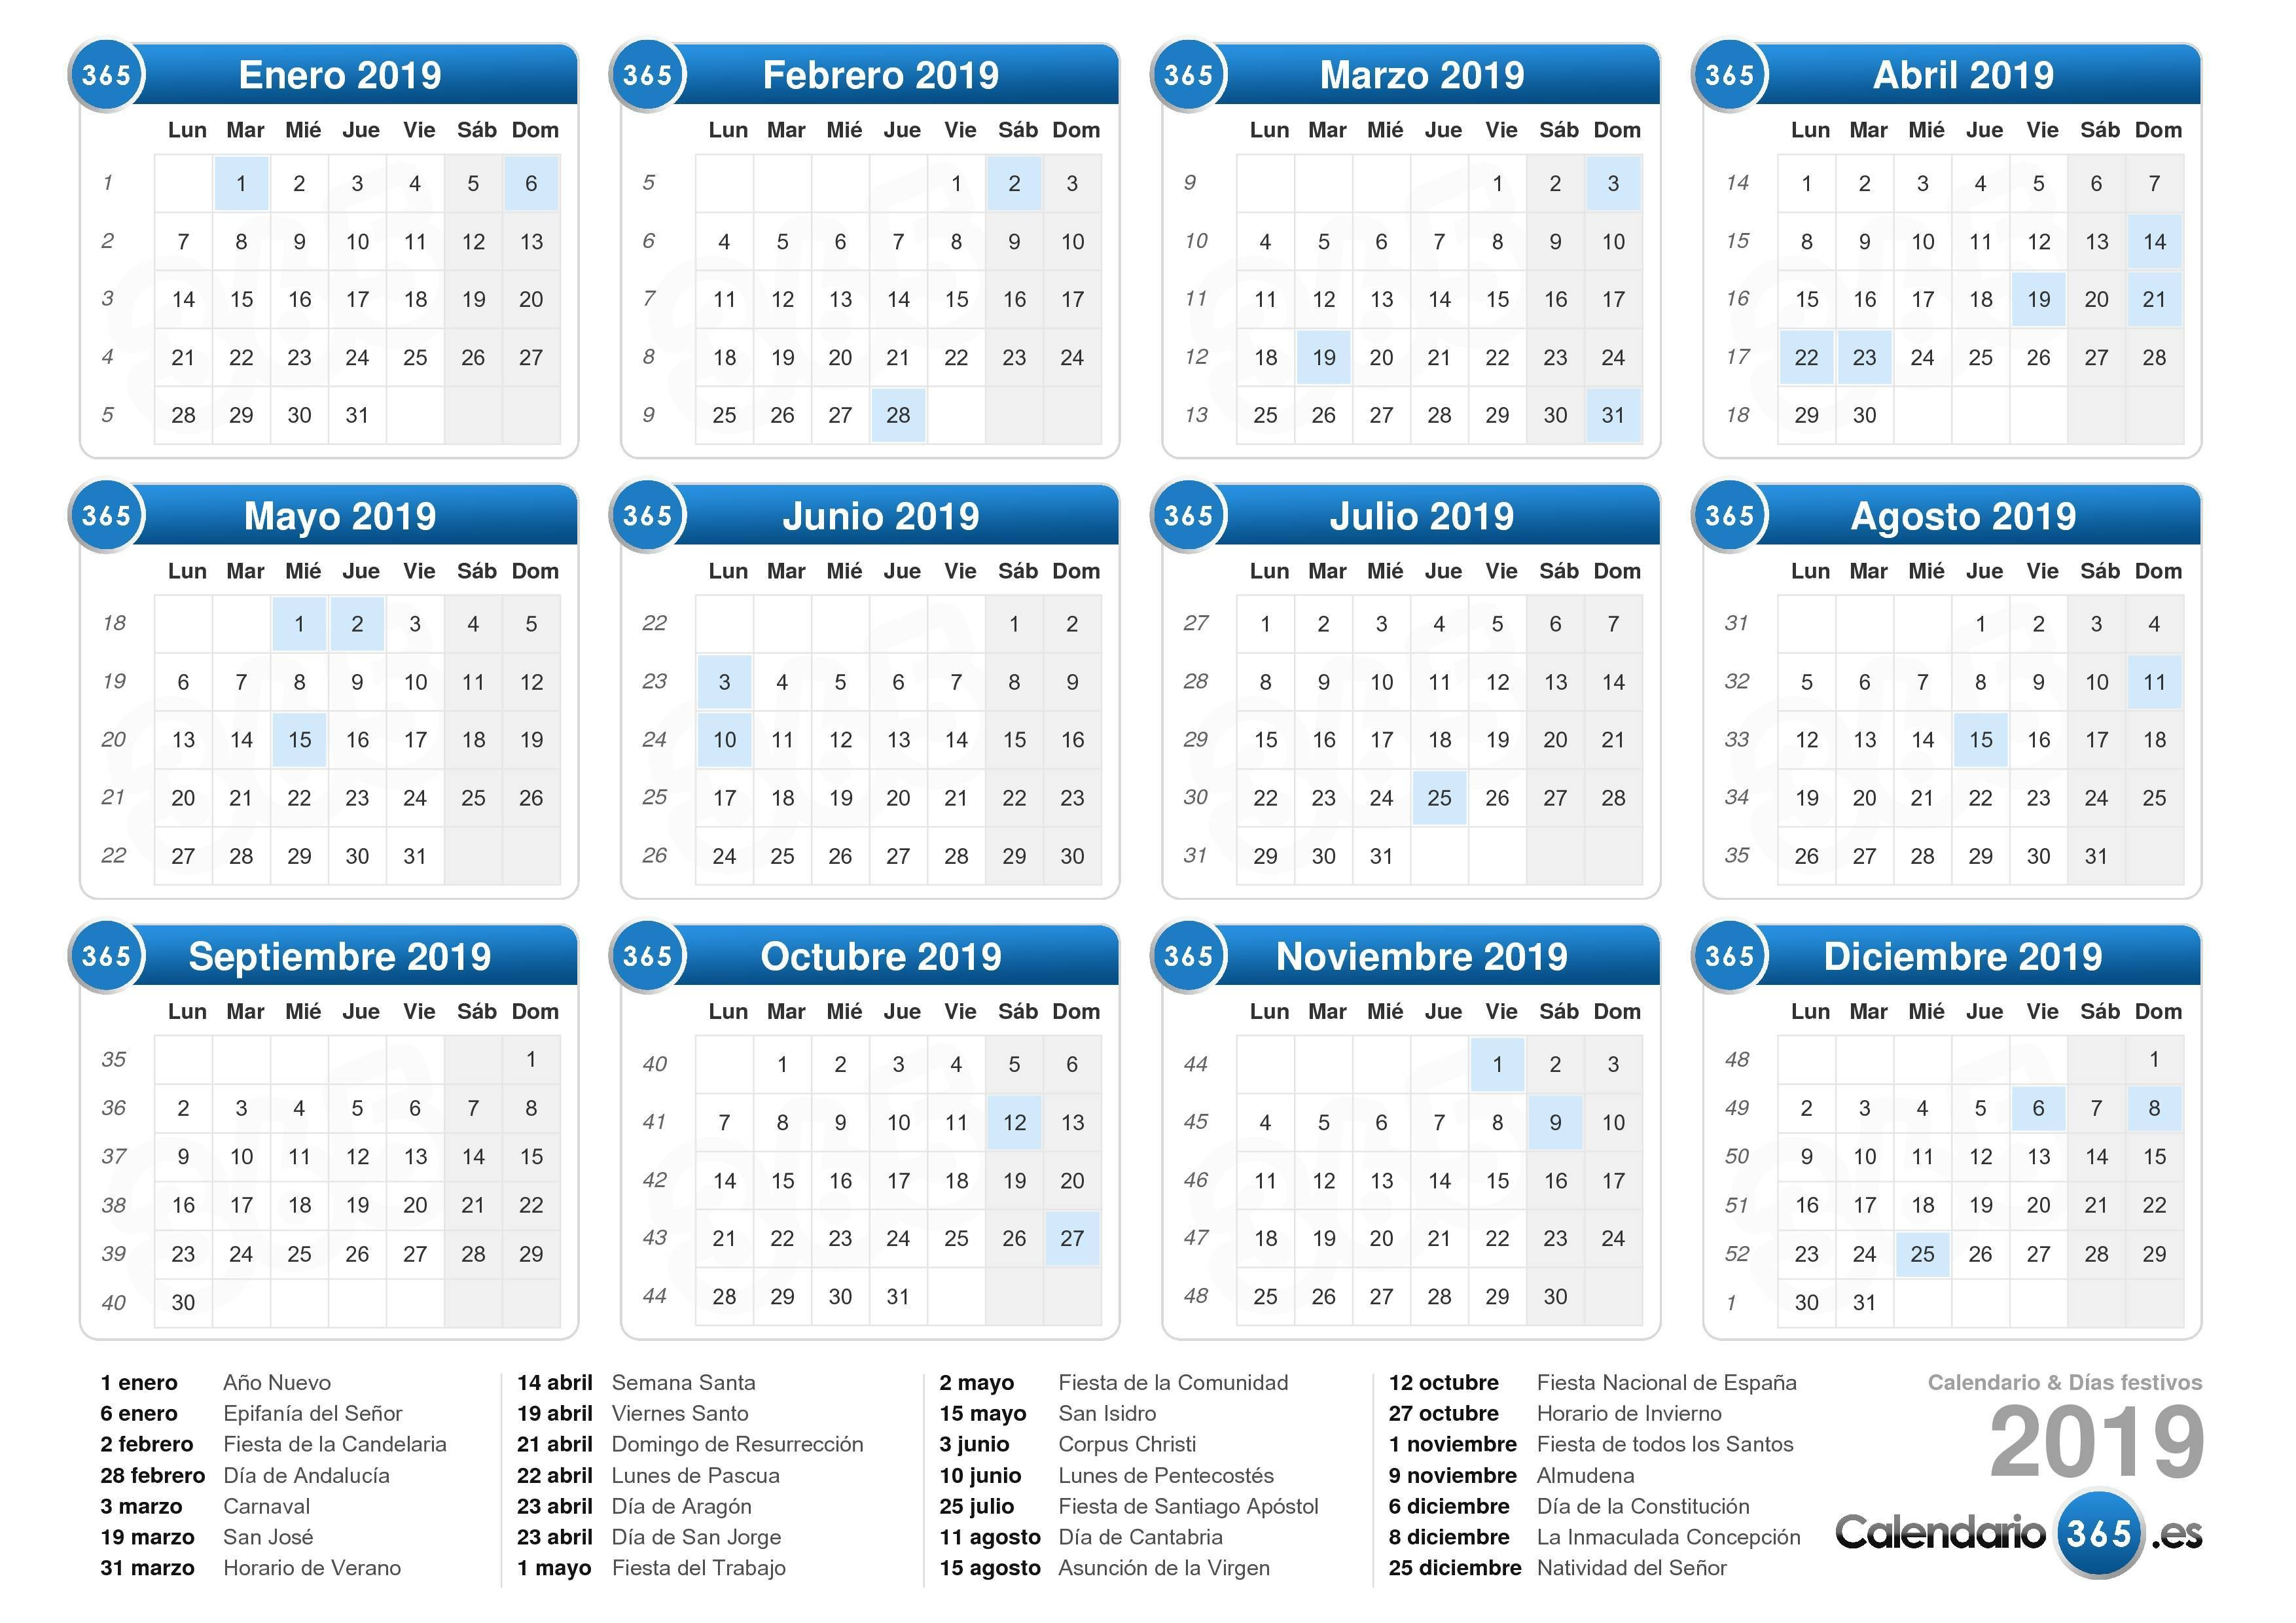 Calendario Para Imprimir 2019 Enero Más Reciente Best Calendario Enero 2019 Para Imprimir Gratis Image Collection Of Calendario Para Imprimir 2019 Enero Más Arriba-a-fecha Calendario Noviembre 2018 64ld Calendario T